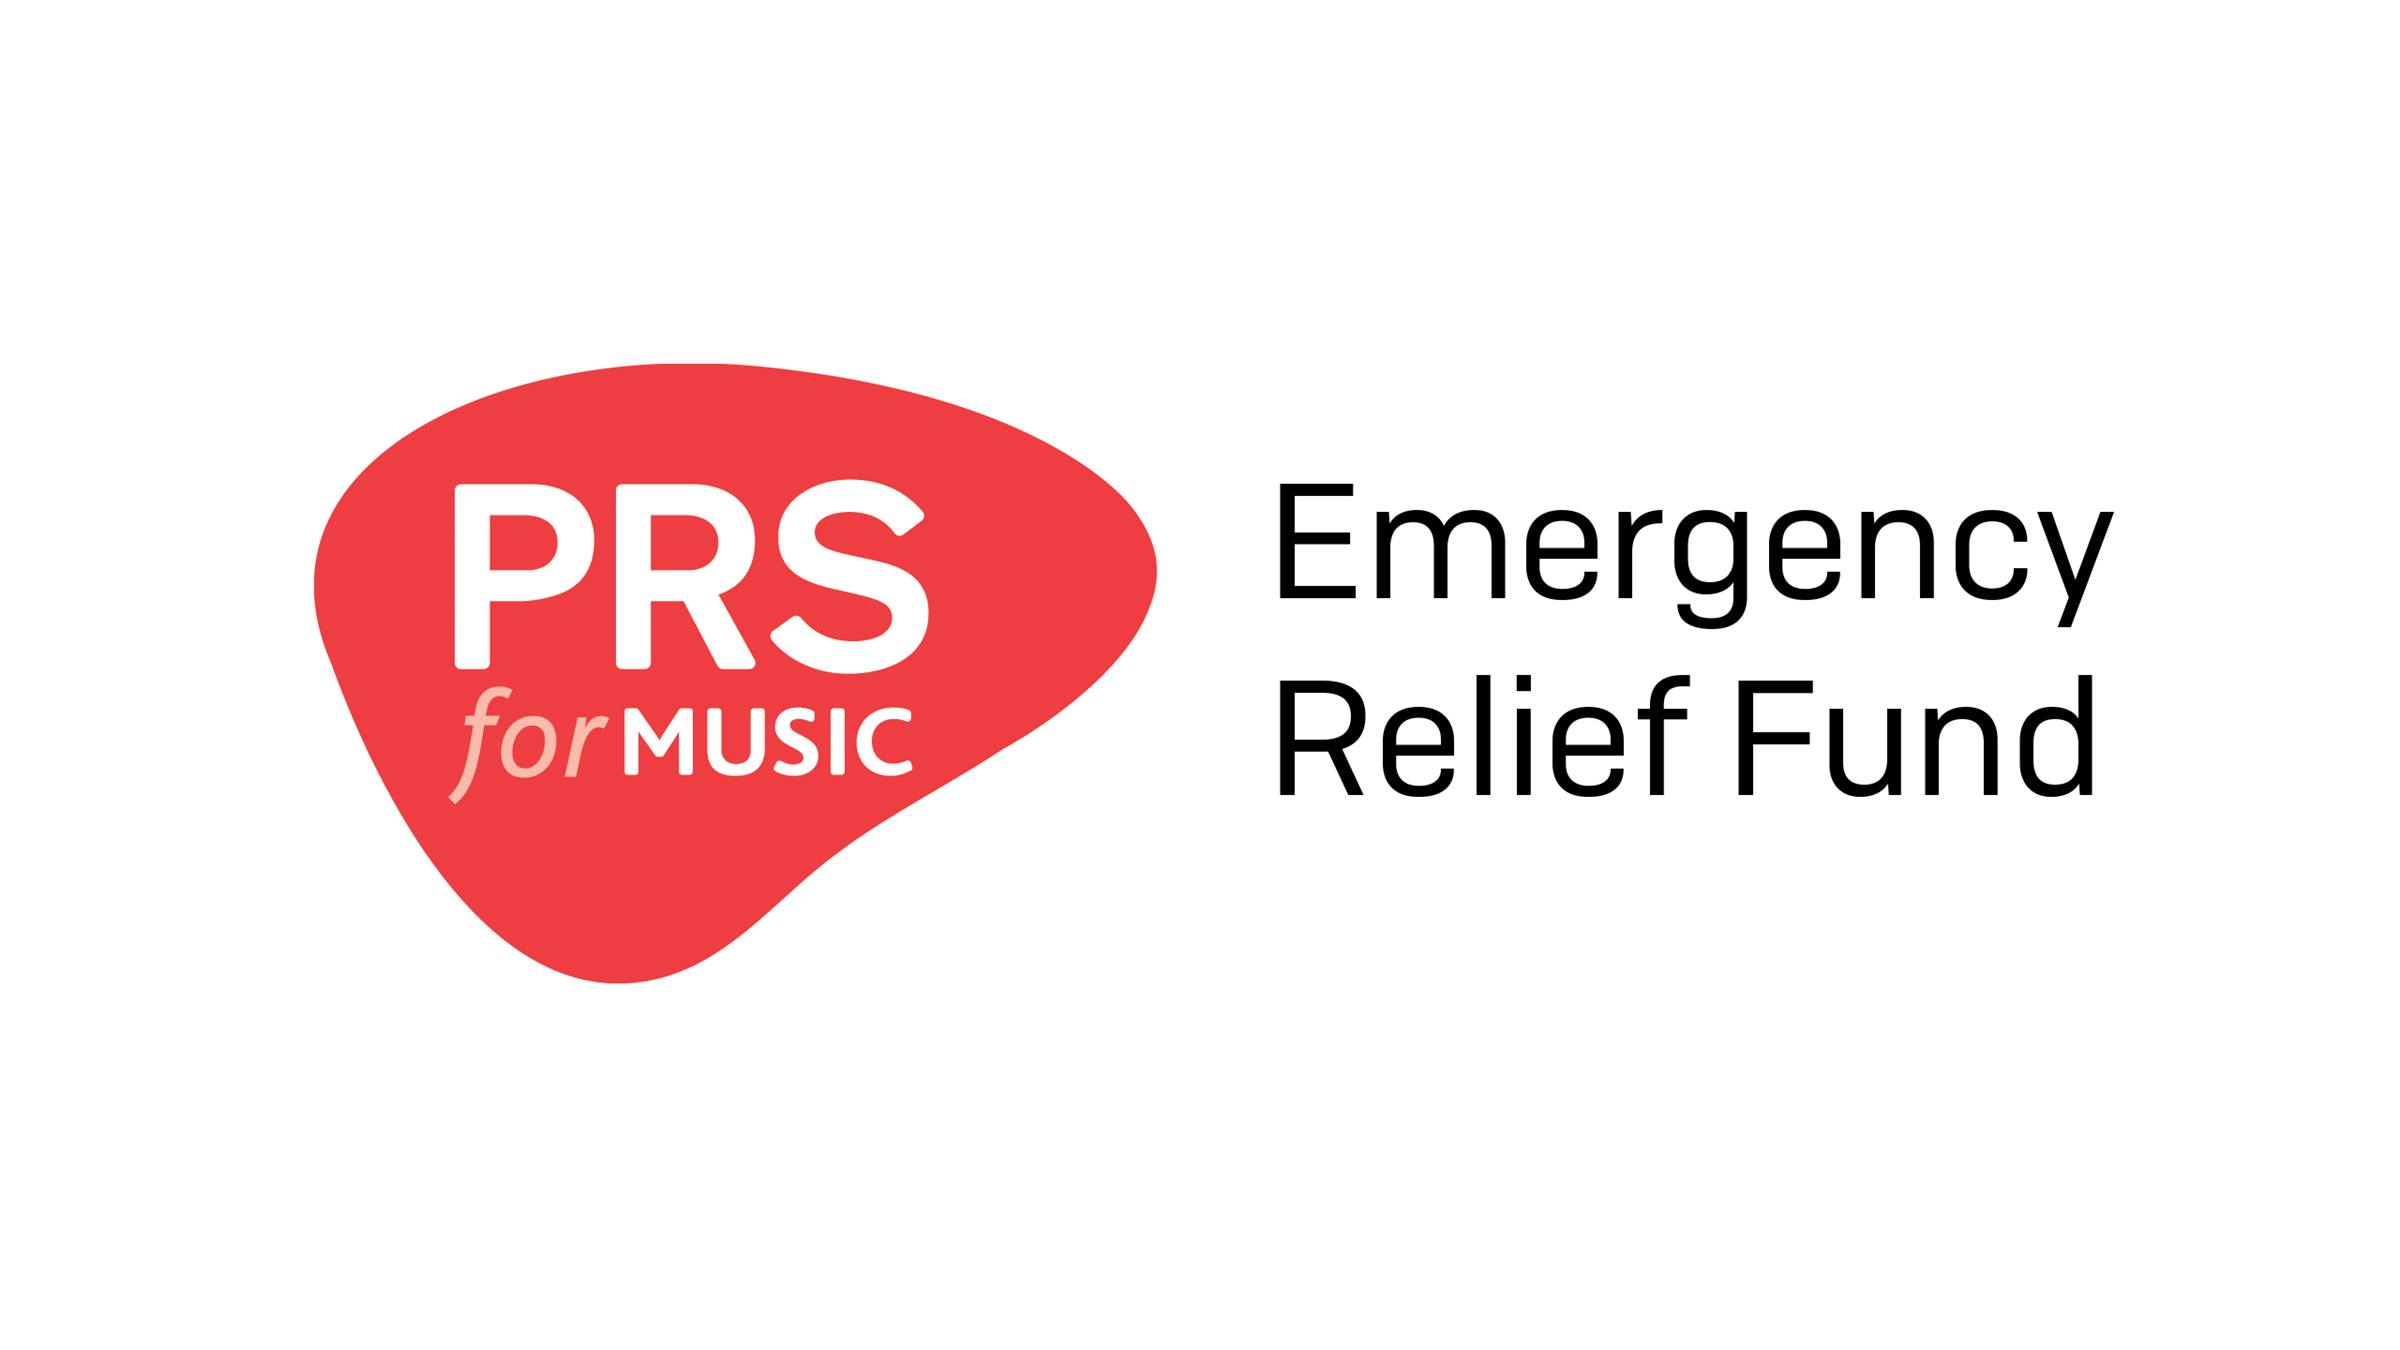 PRS for music Emergency Relief Fund